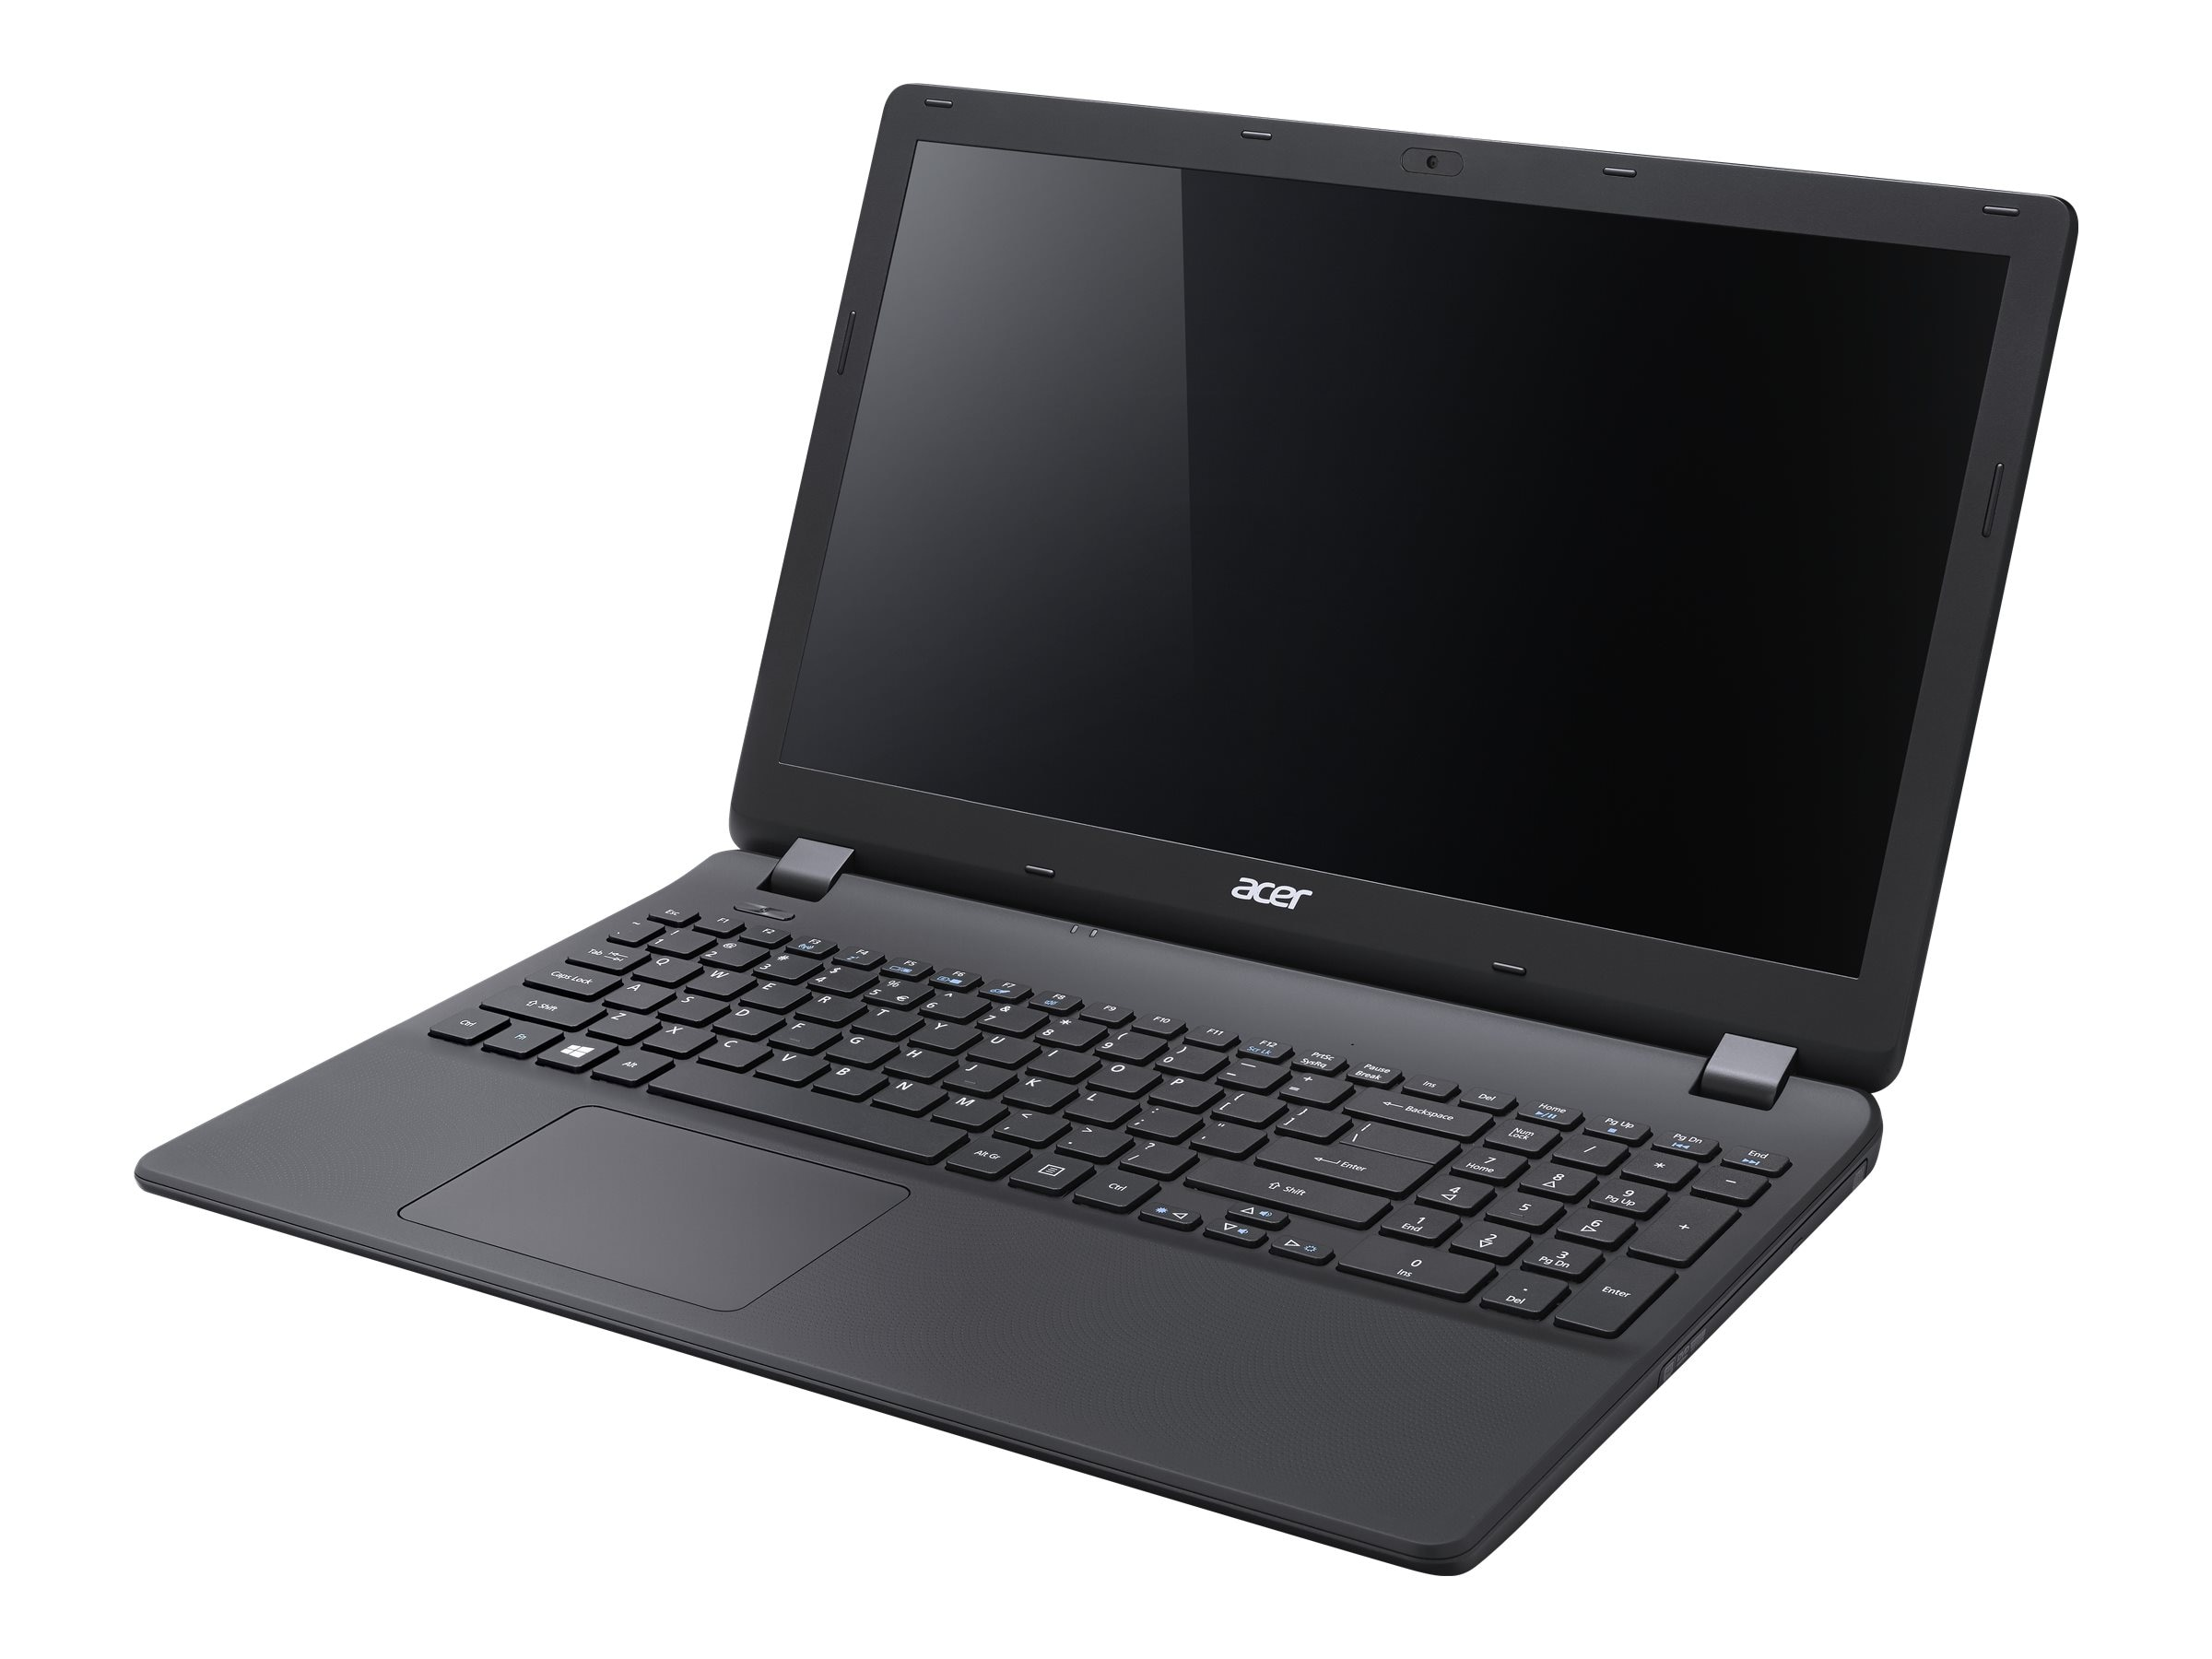 Acer Aspire ES1-571-C7N9 1.4GHz Celeron 15.6in display